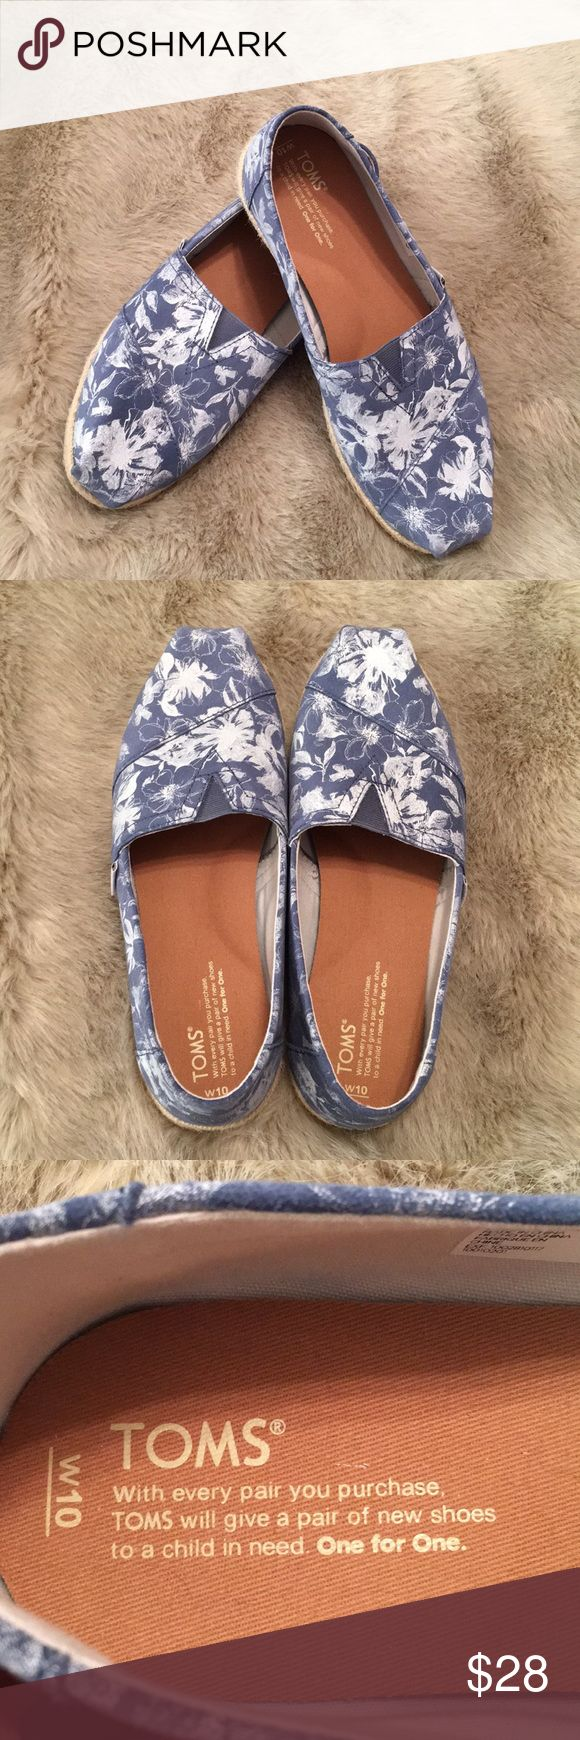 Toms Espadrille Slip-Ons Size 10 Perfect look for Spring! Classic Toms slip-ons with the espadrille sole. Silver and white floral print on denim blue background. Very light wear, from smoke/pet free home. Women's size 10. Toms Shoes